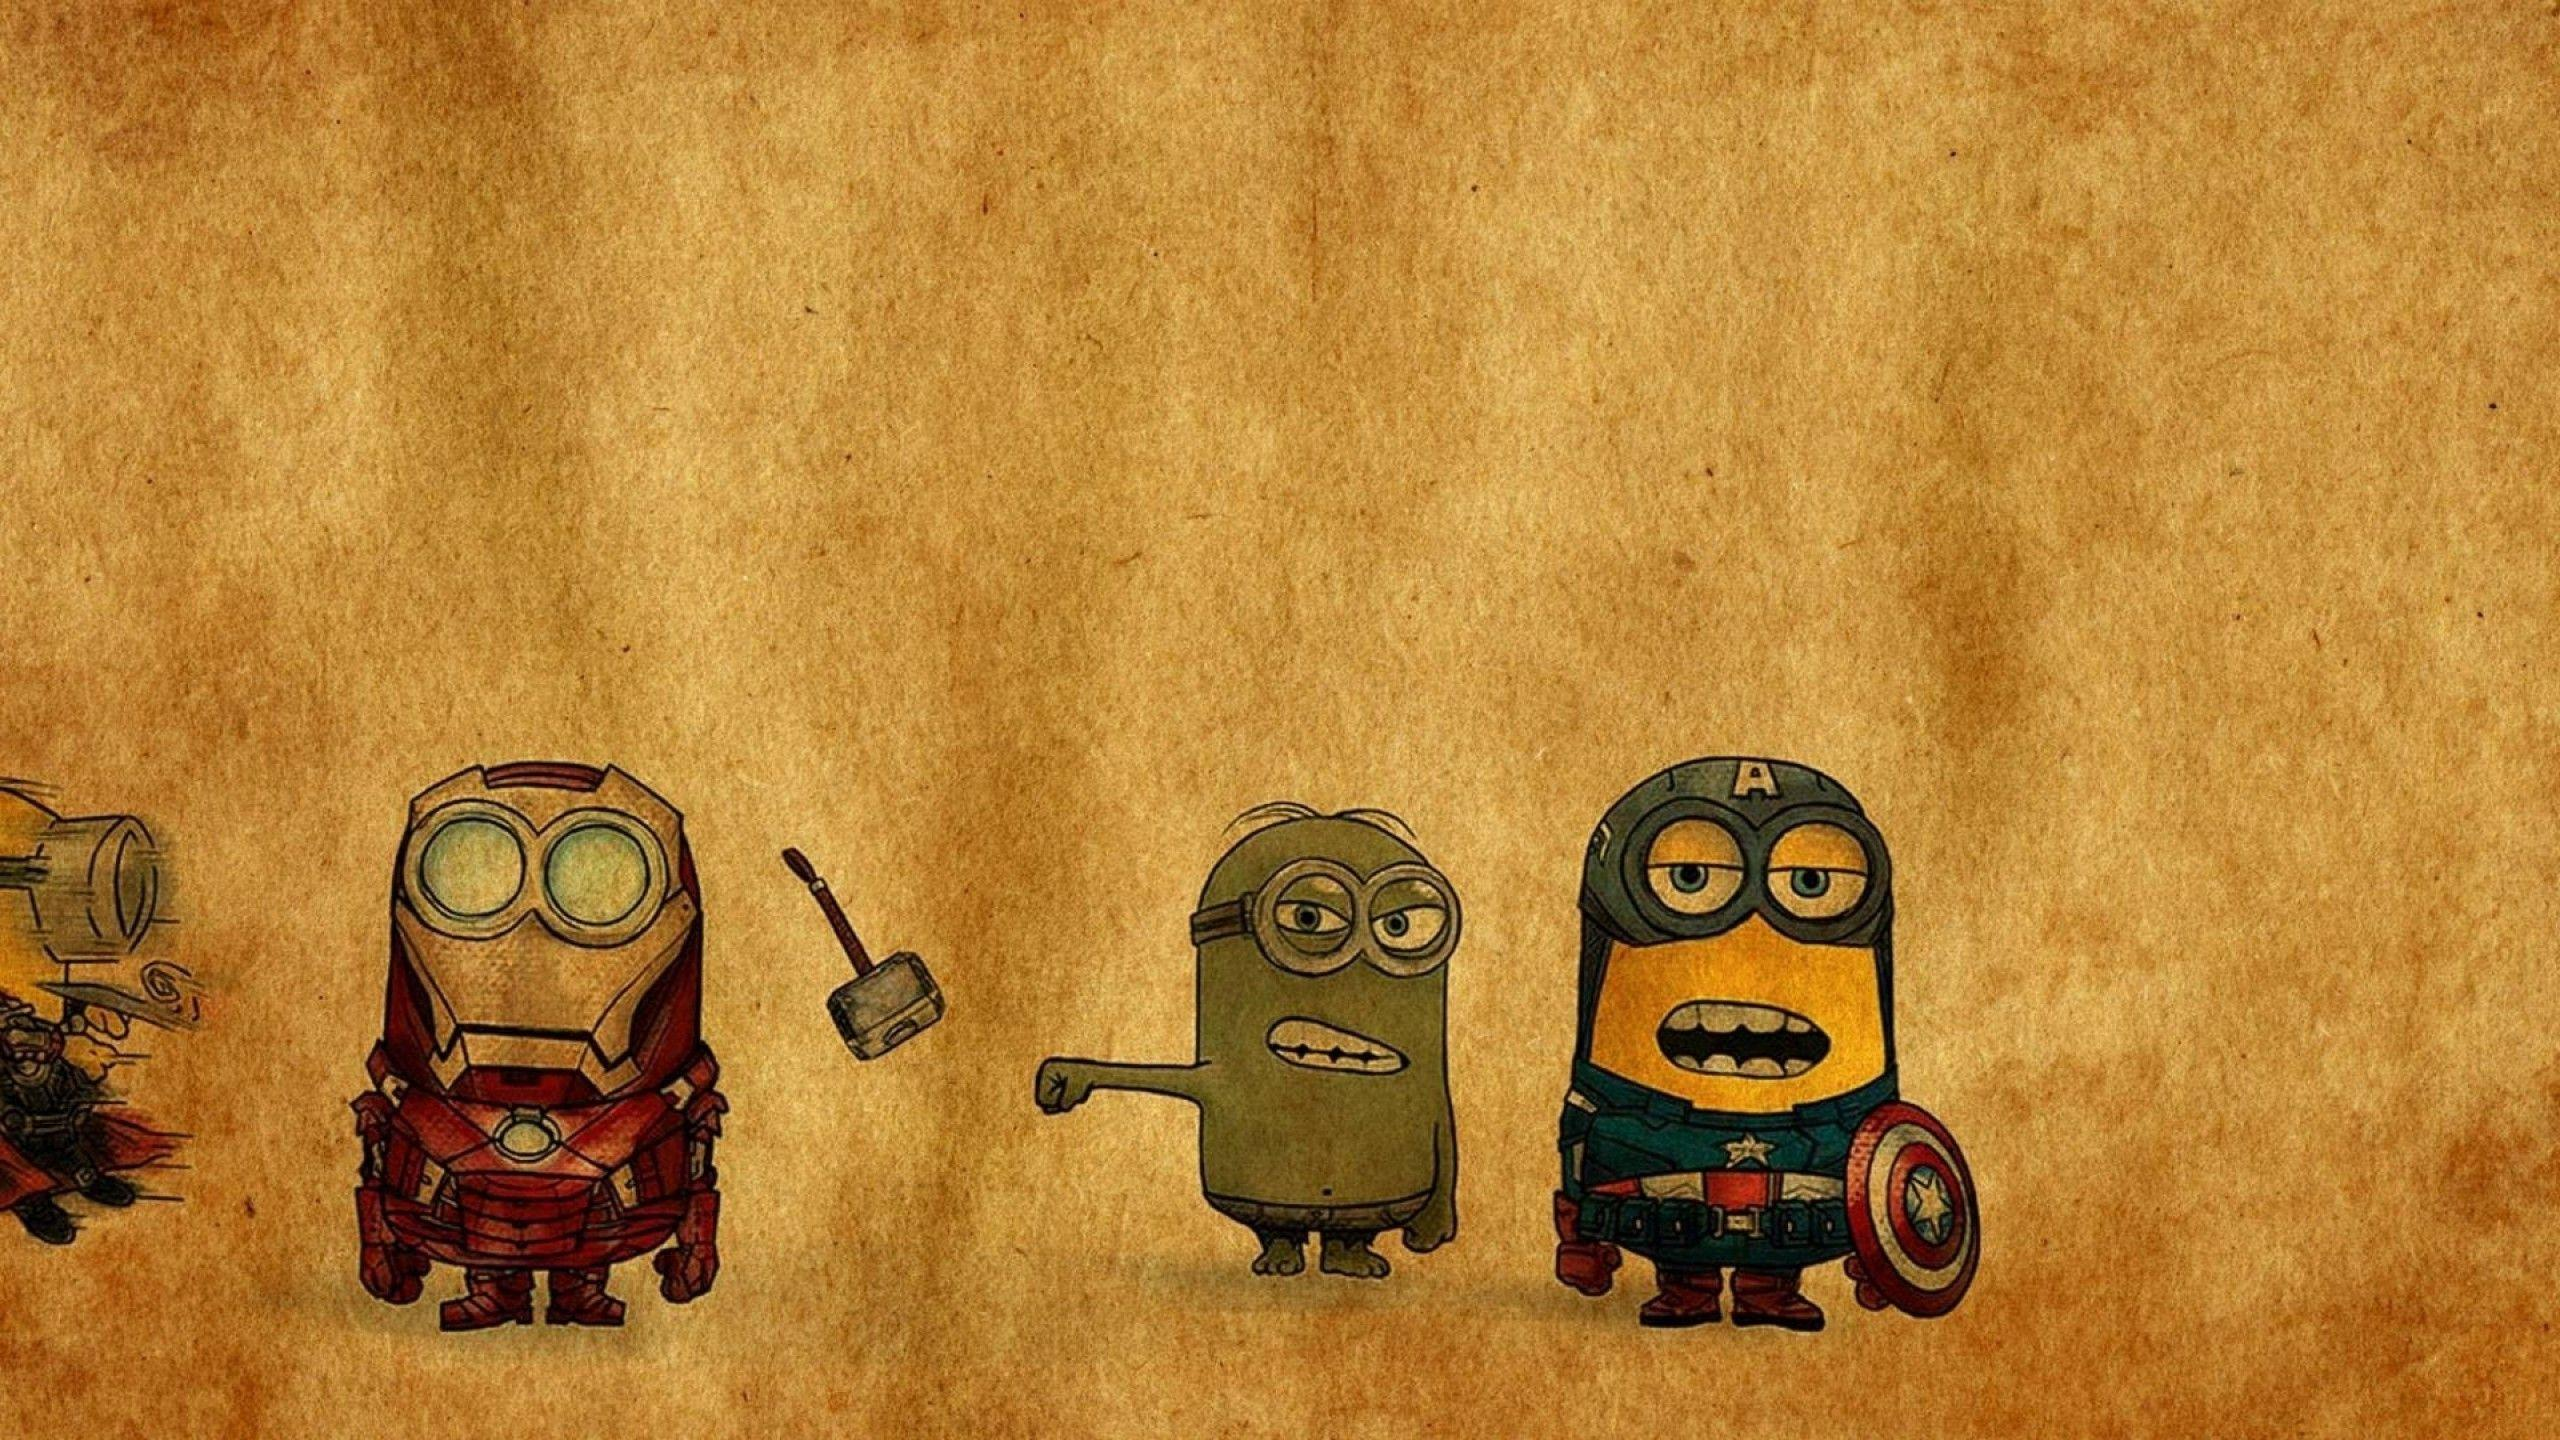 Avenger minions Wallpapers #